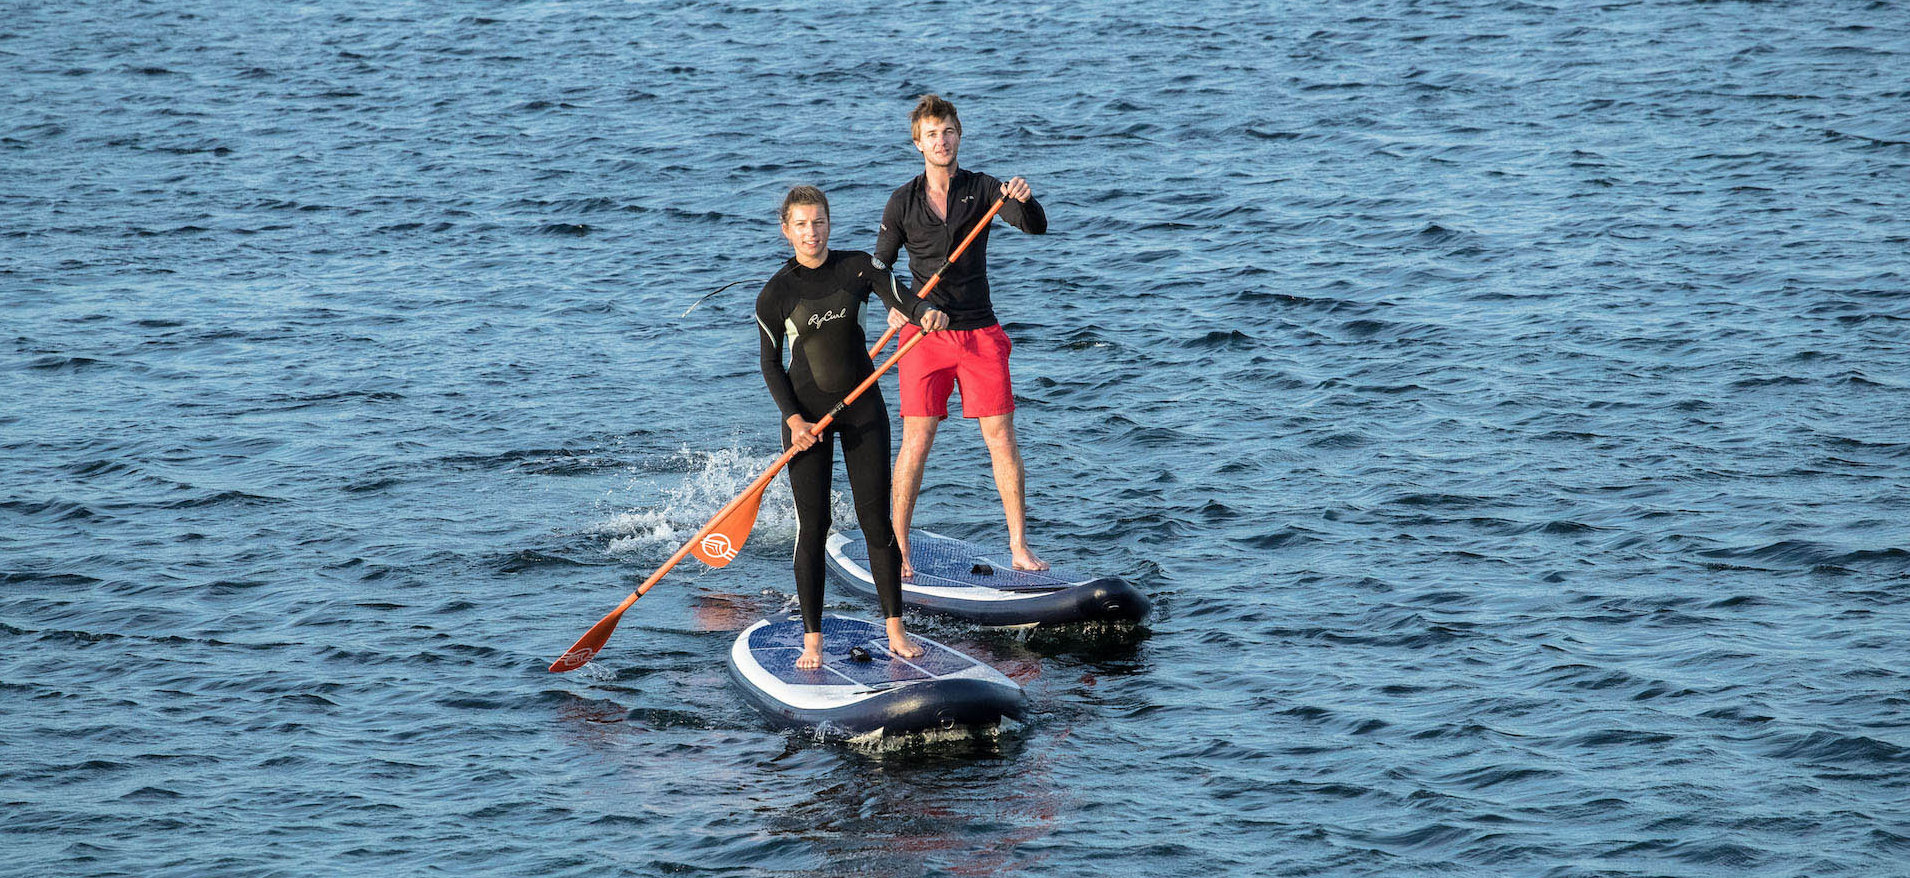 Paddle gonflable pas cher